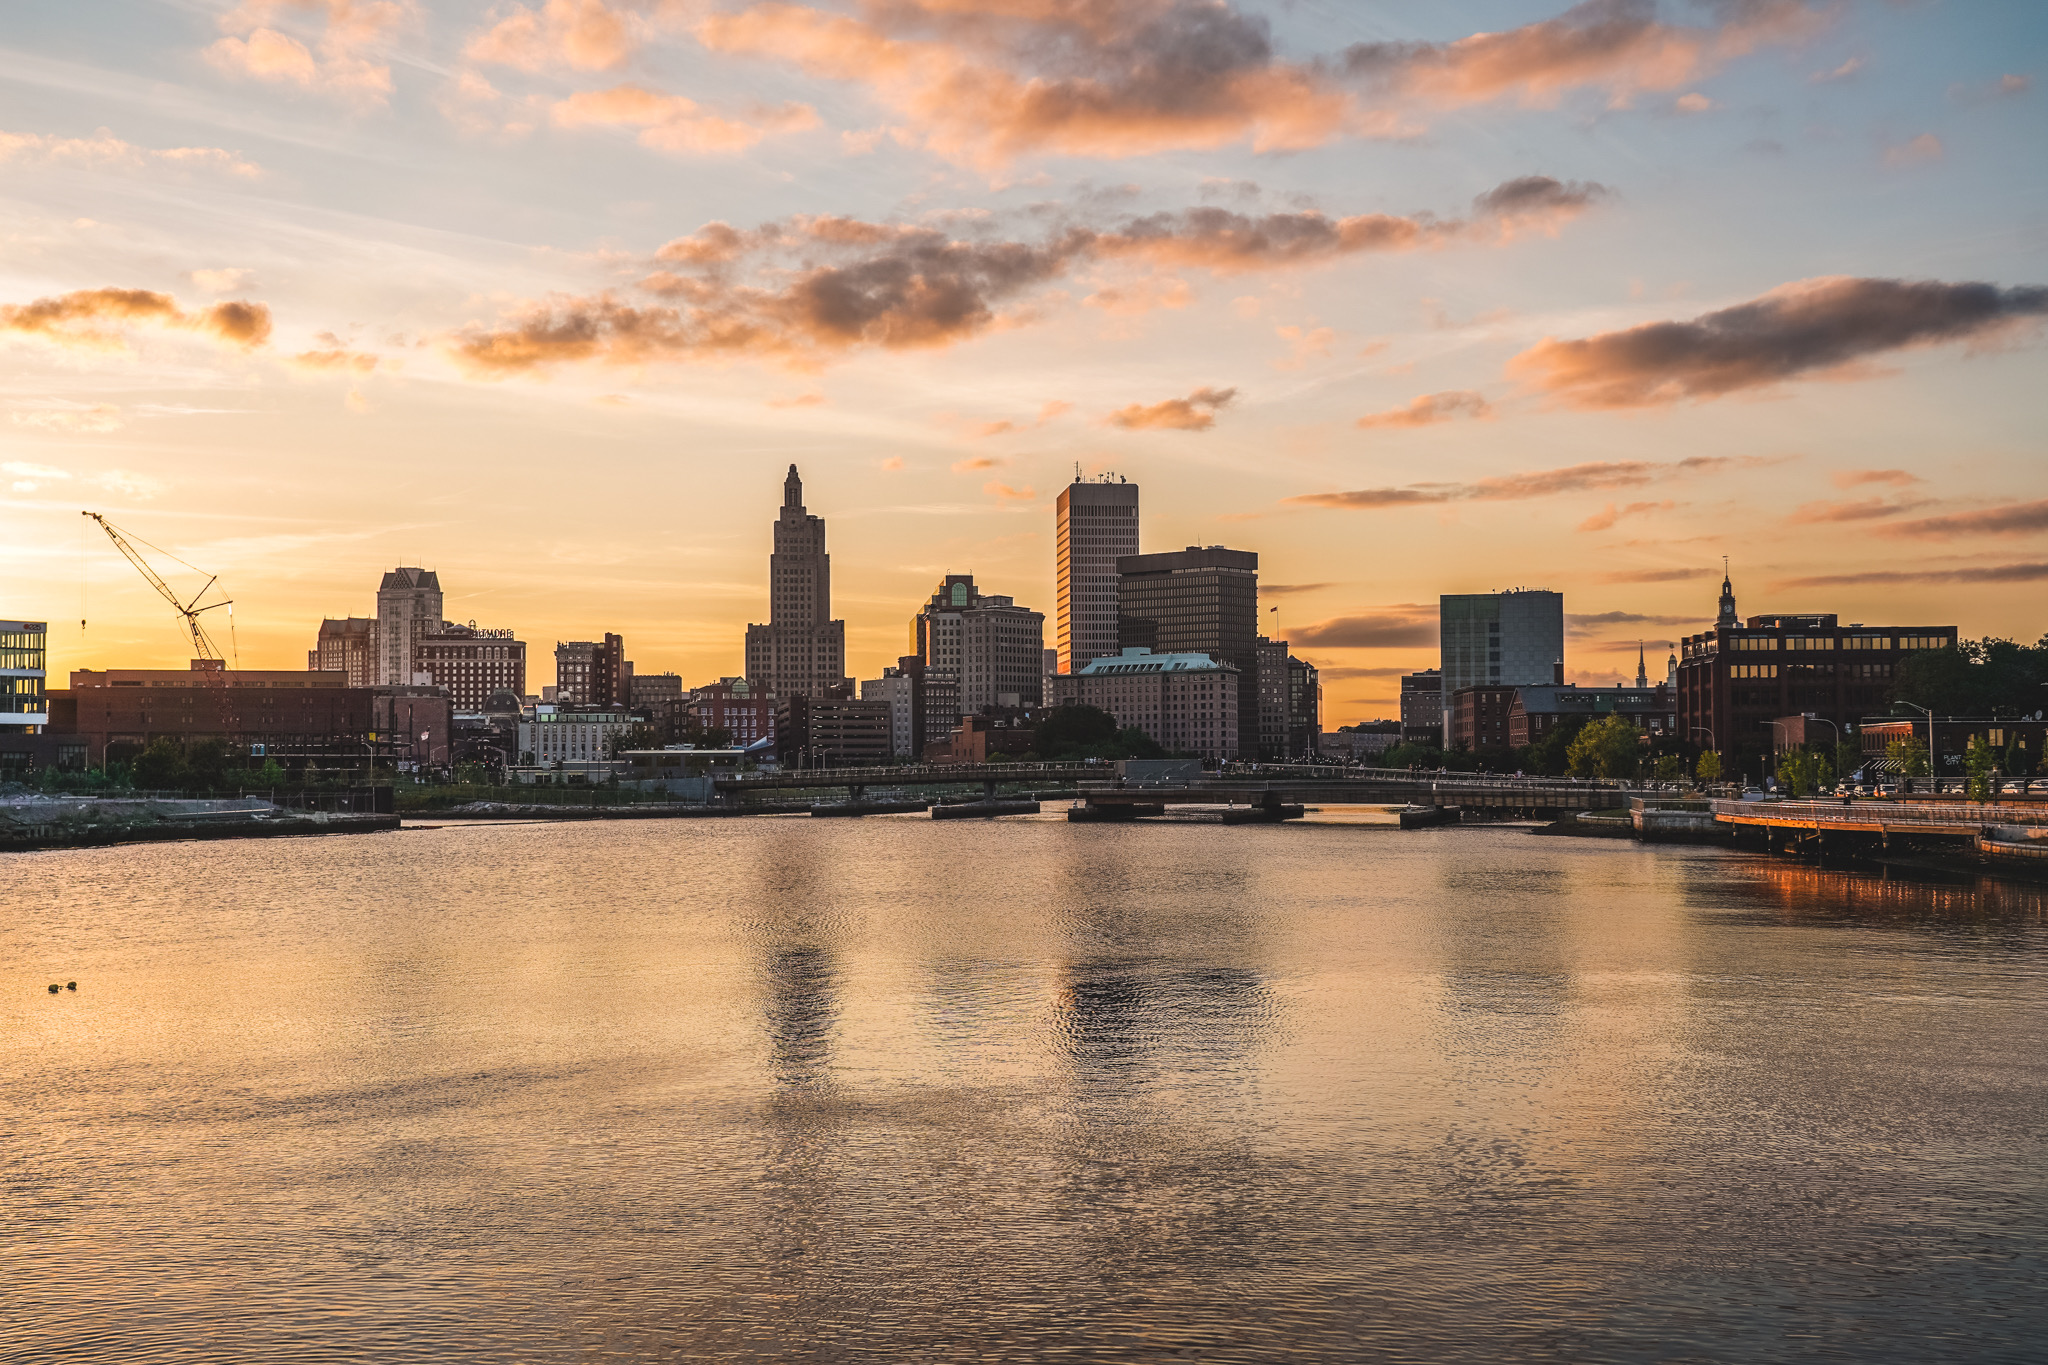 City of Providence skyline